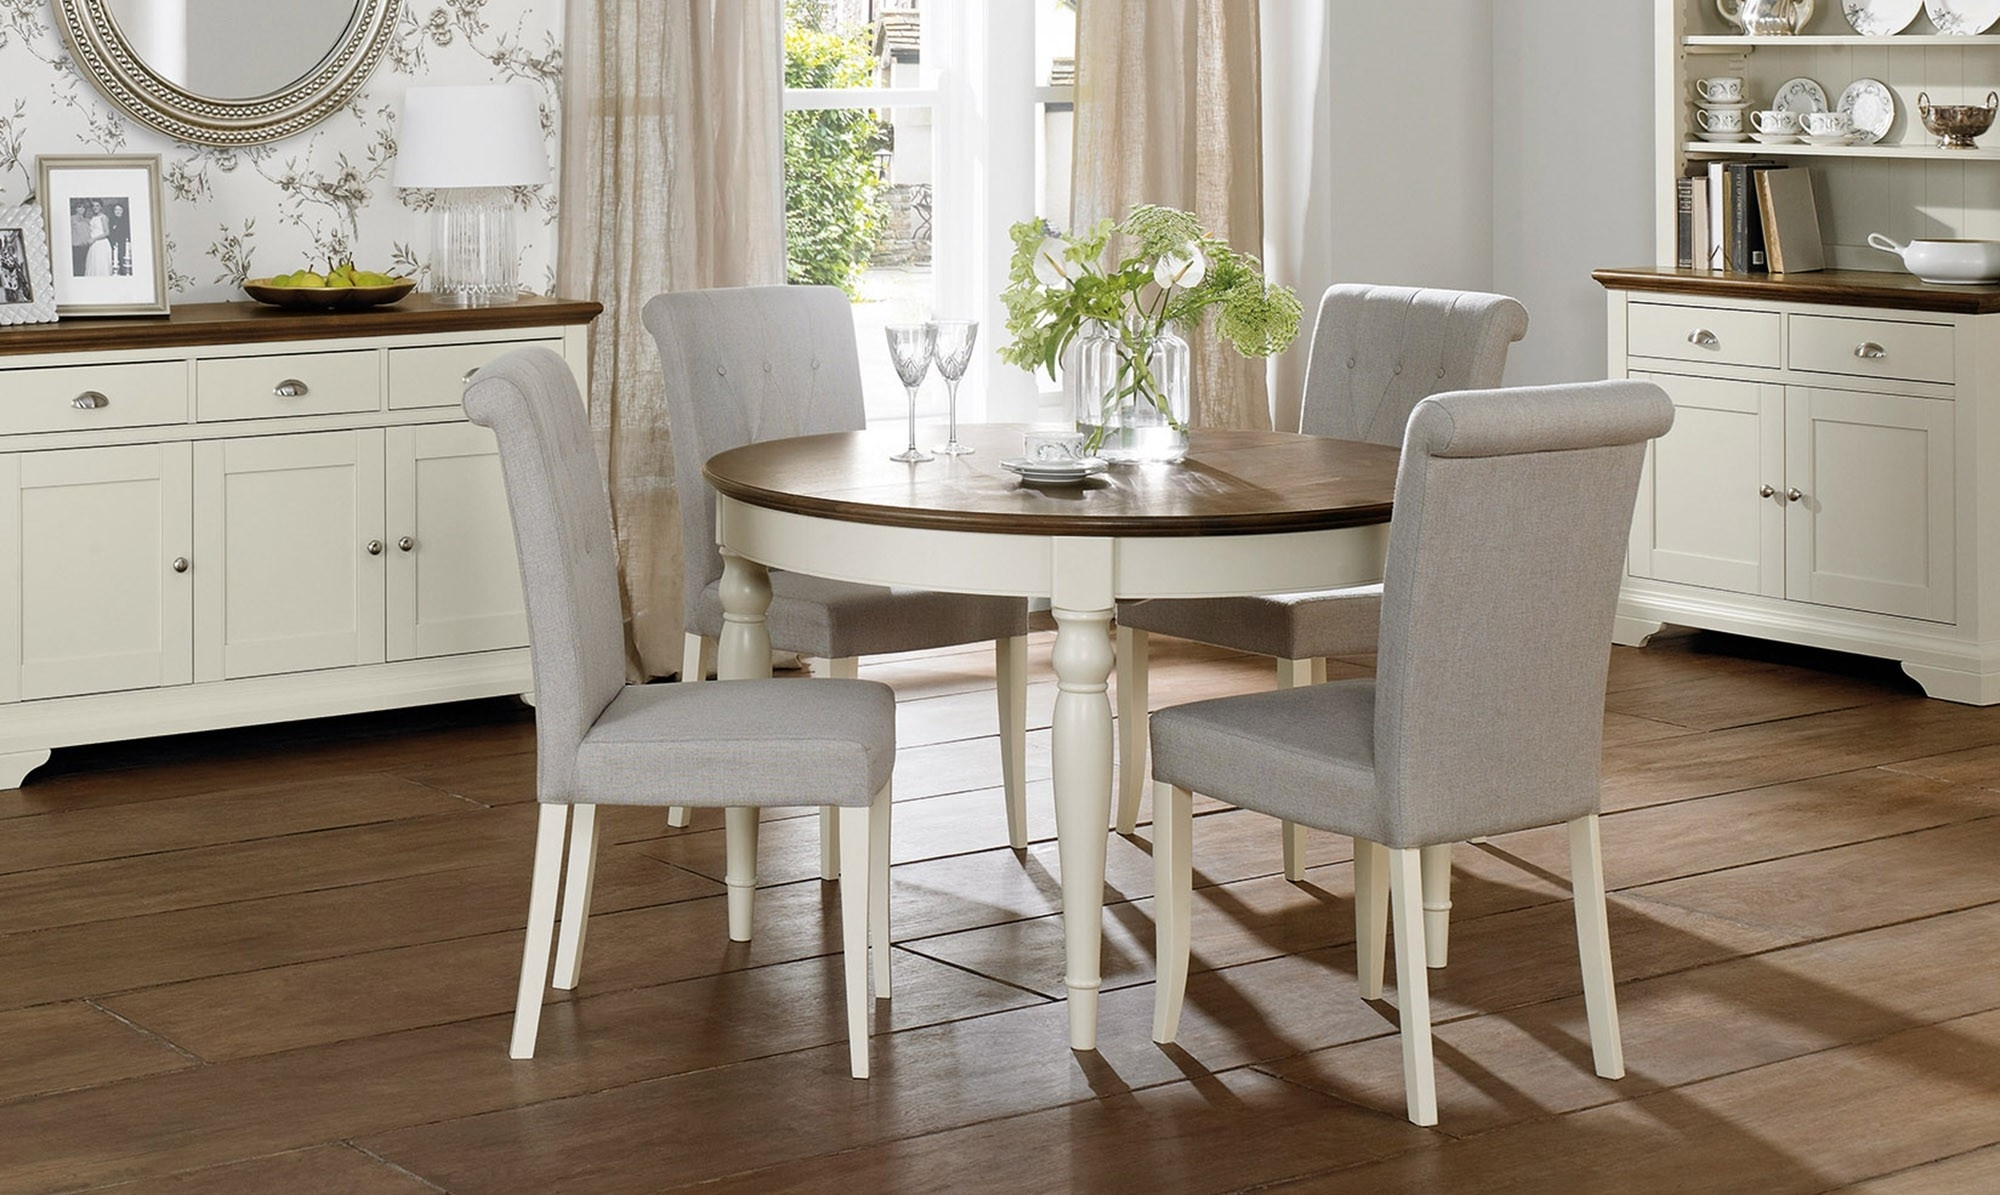 White Round Extending Dining Tables For Most Current Pine Island Wood Round Extendable Dining Table Come With White (View 13 of 25)